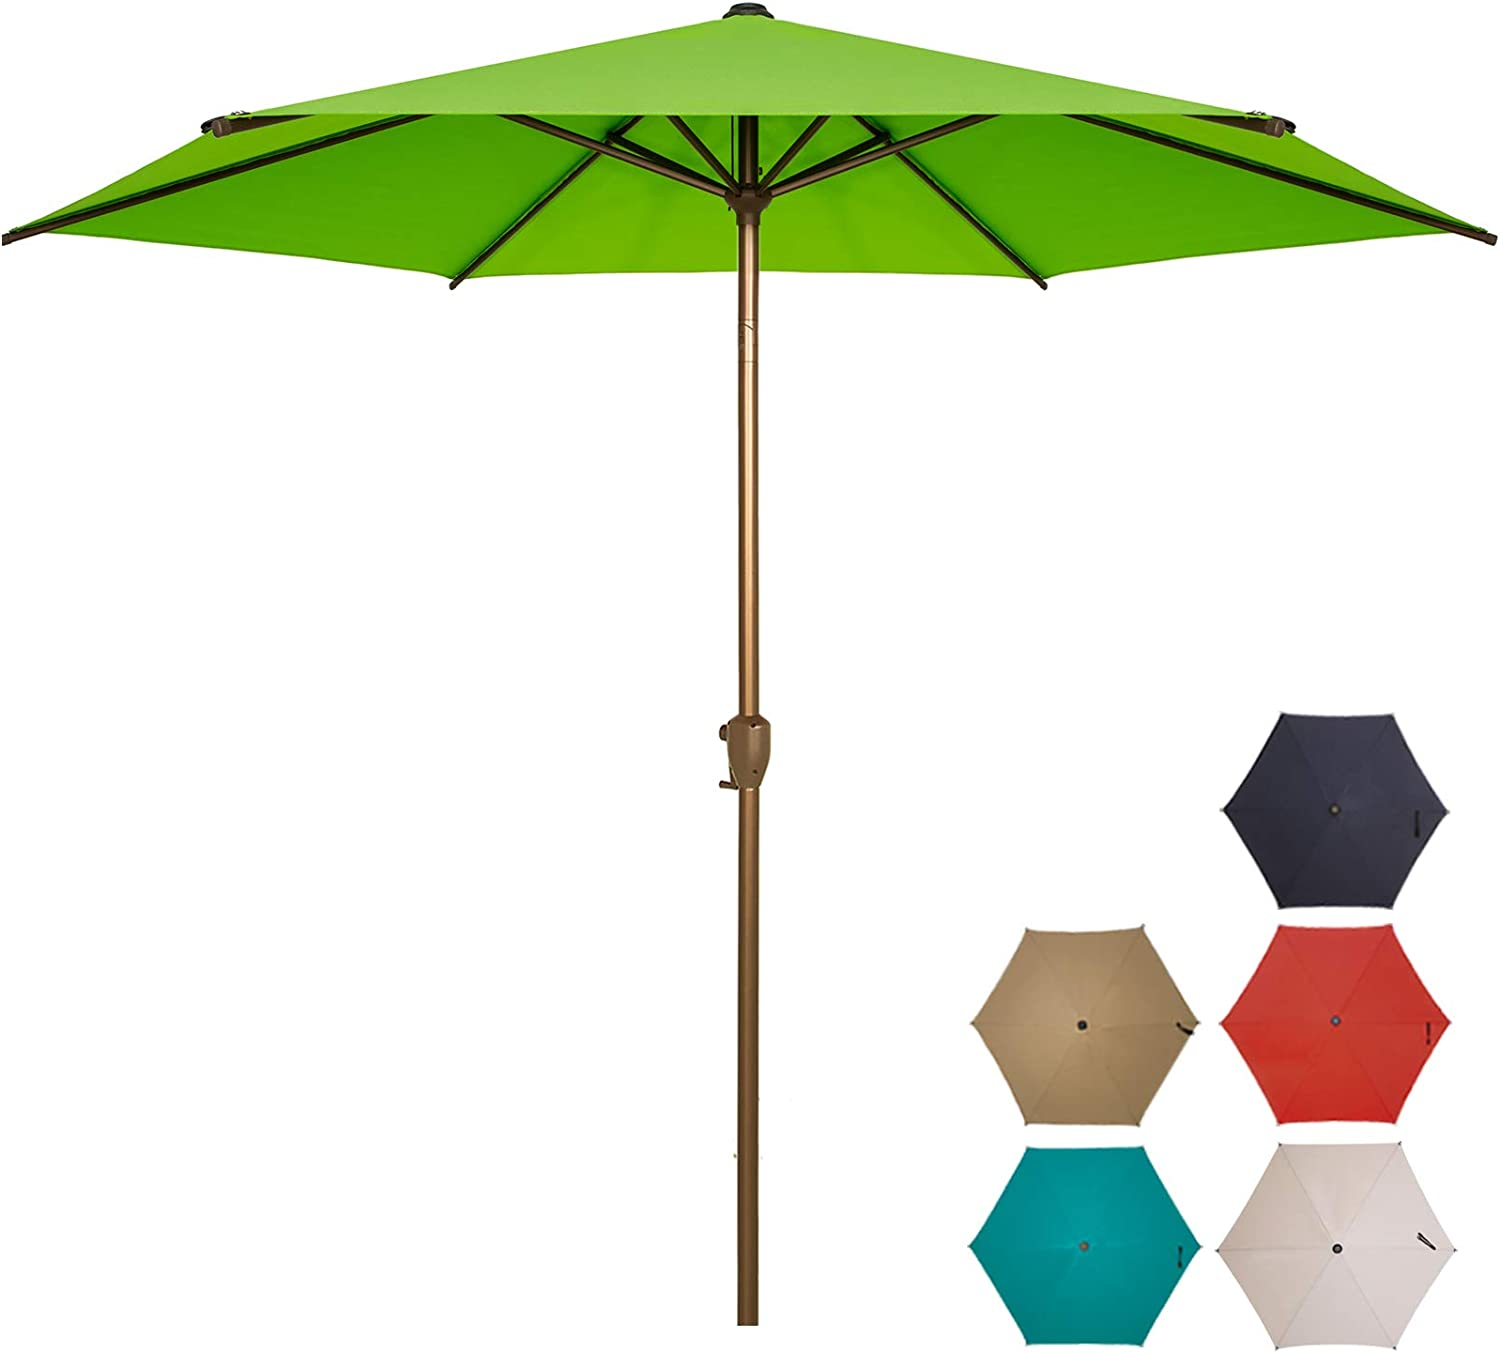 Ogrmar 記念日 驚きの値段で 9 FT Patio Umbrella Table Outdoor Butt with Push